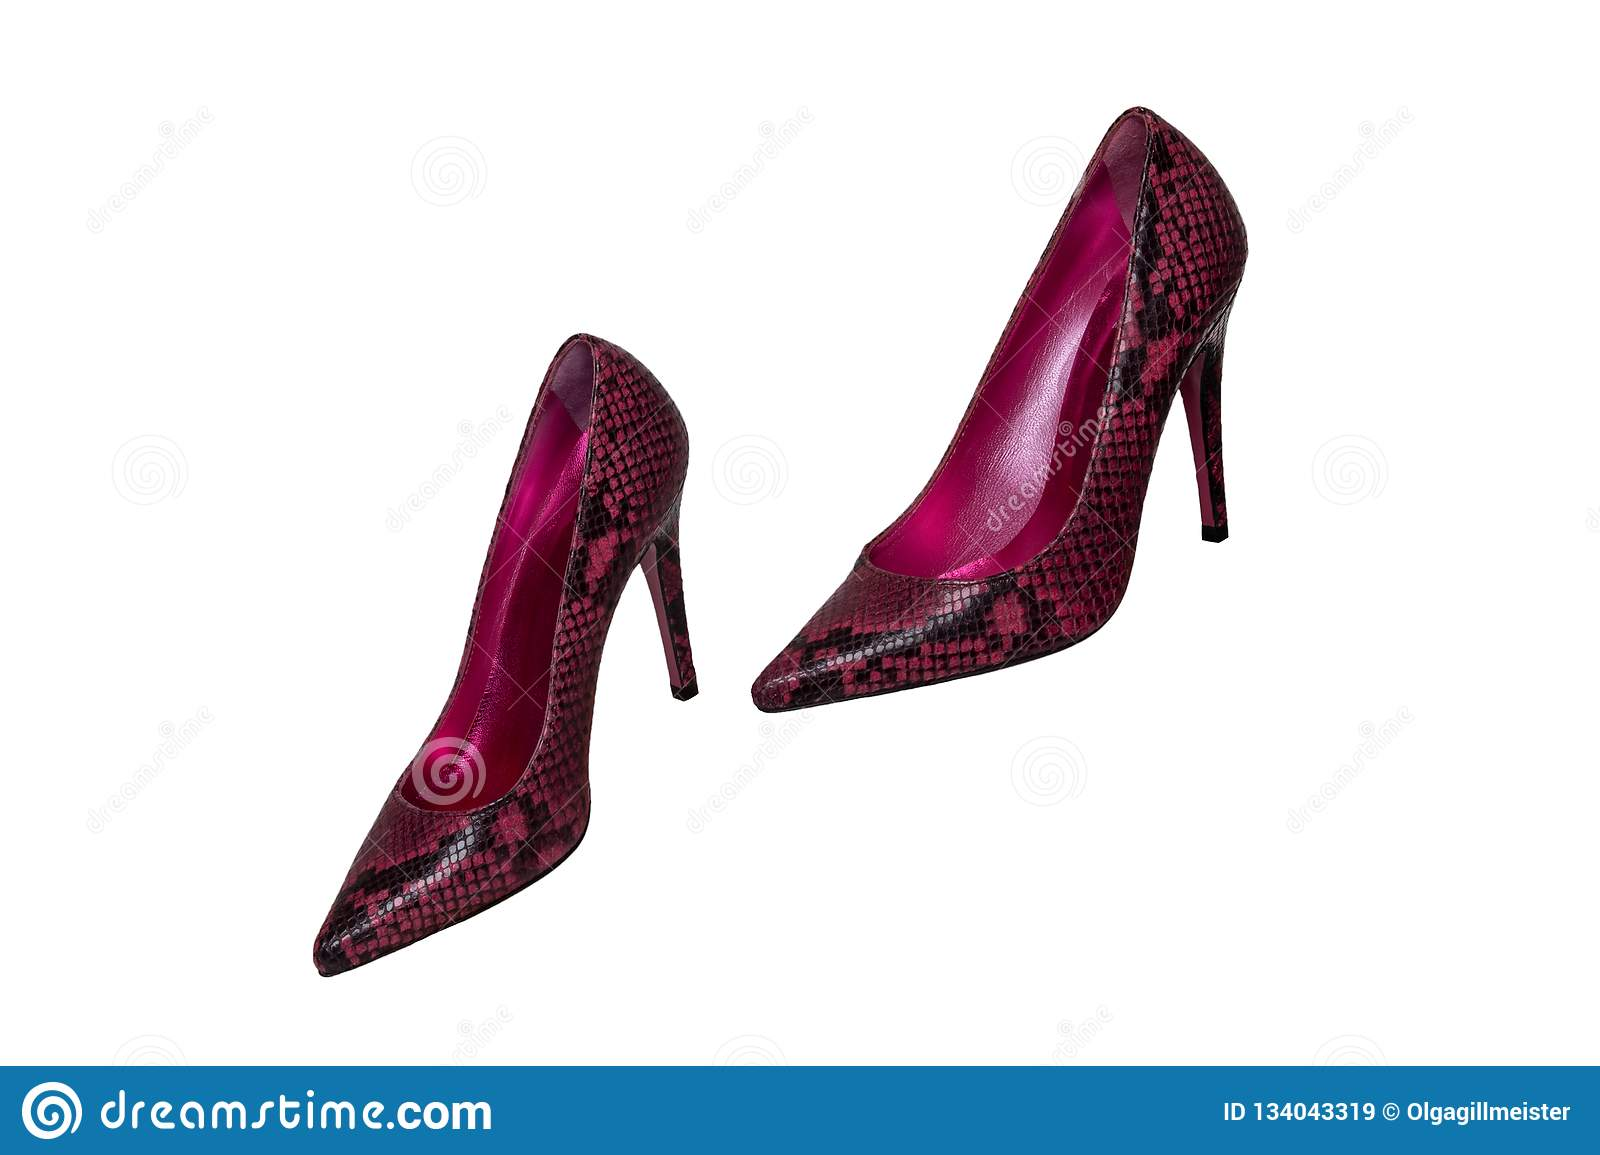 Fashionable female high heels. A pair of purple high-heeled female shoes isolated on a white background. Shoes from snakeskin